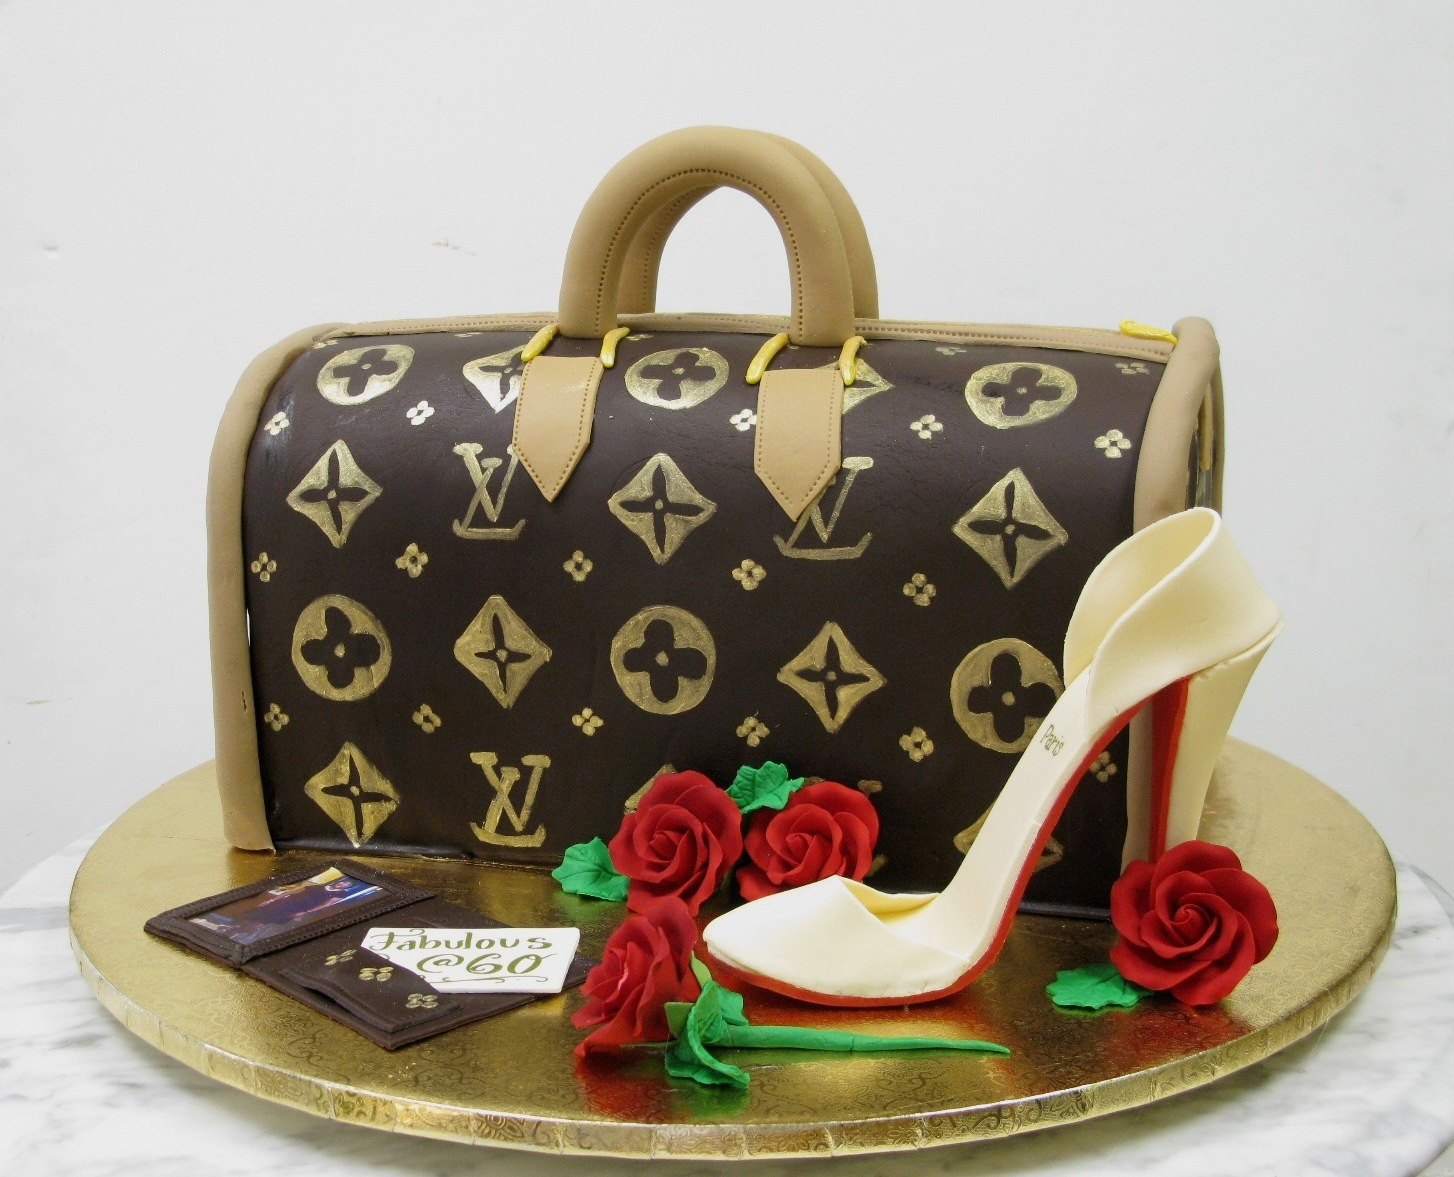 Louis Vuitton with High Heel